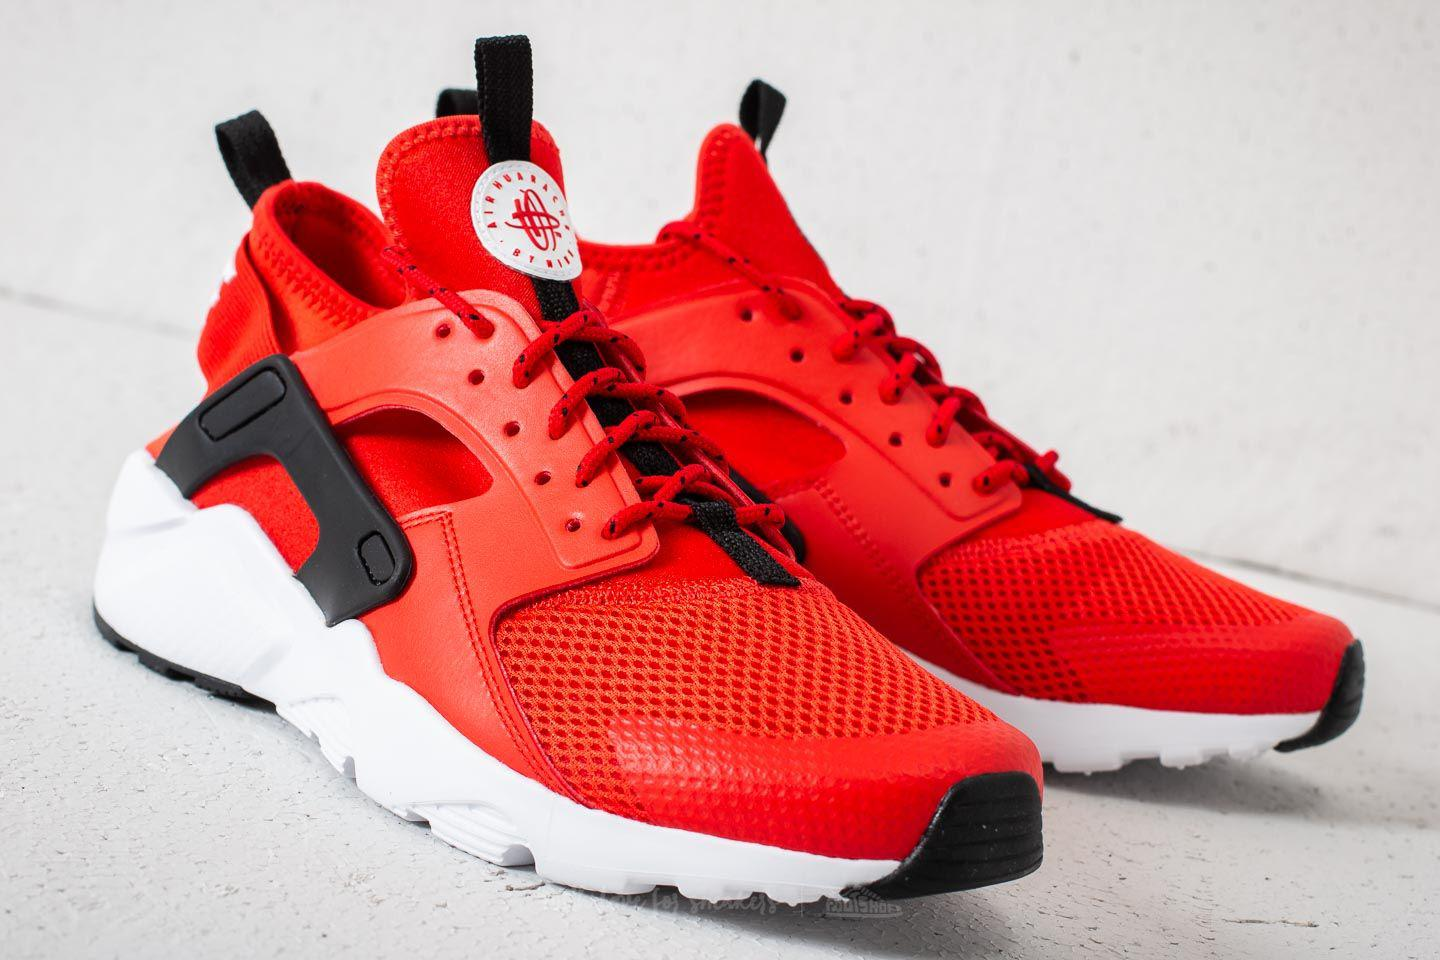 a38c4f8aef7bf Lyst - Nike Air Huarache Run Ultra Gs Habanero Red  White-white ...